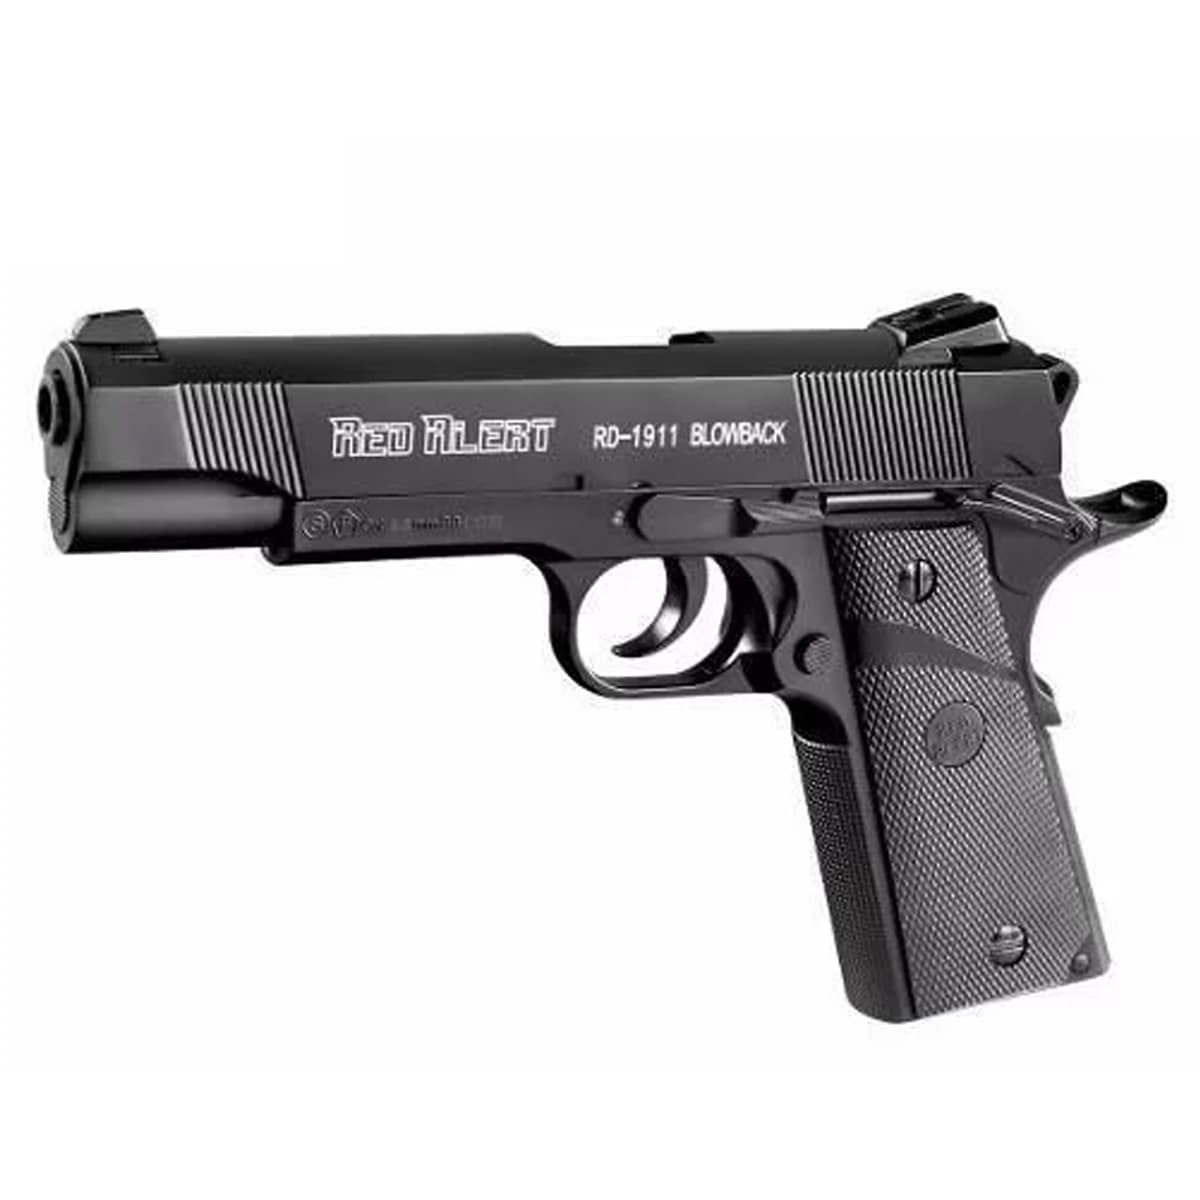 Pistola Gamo Rd-1911 Blowback Co2 4.5mm